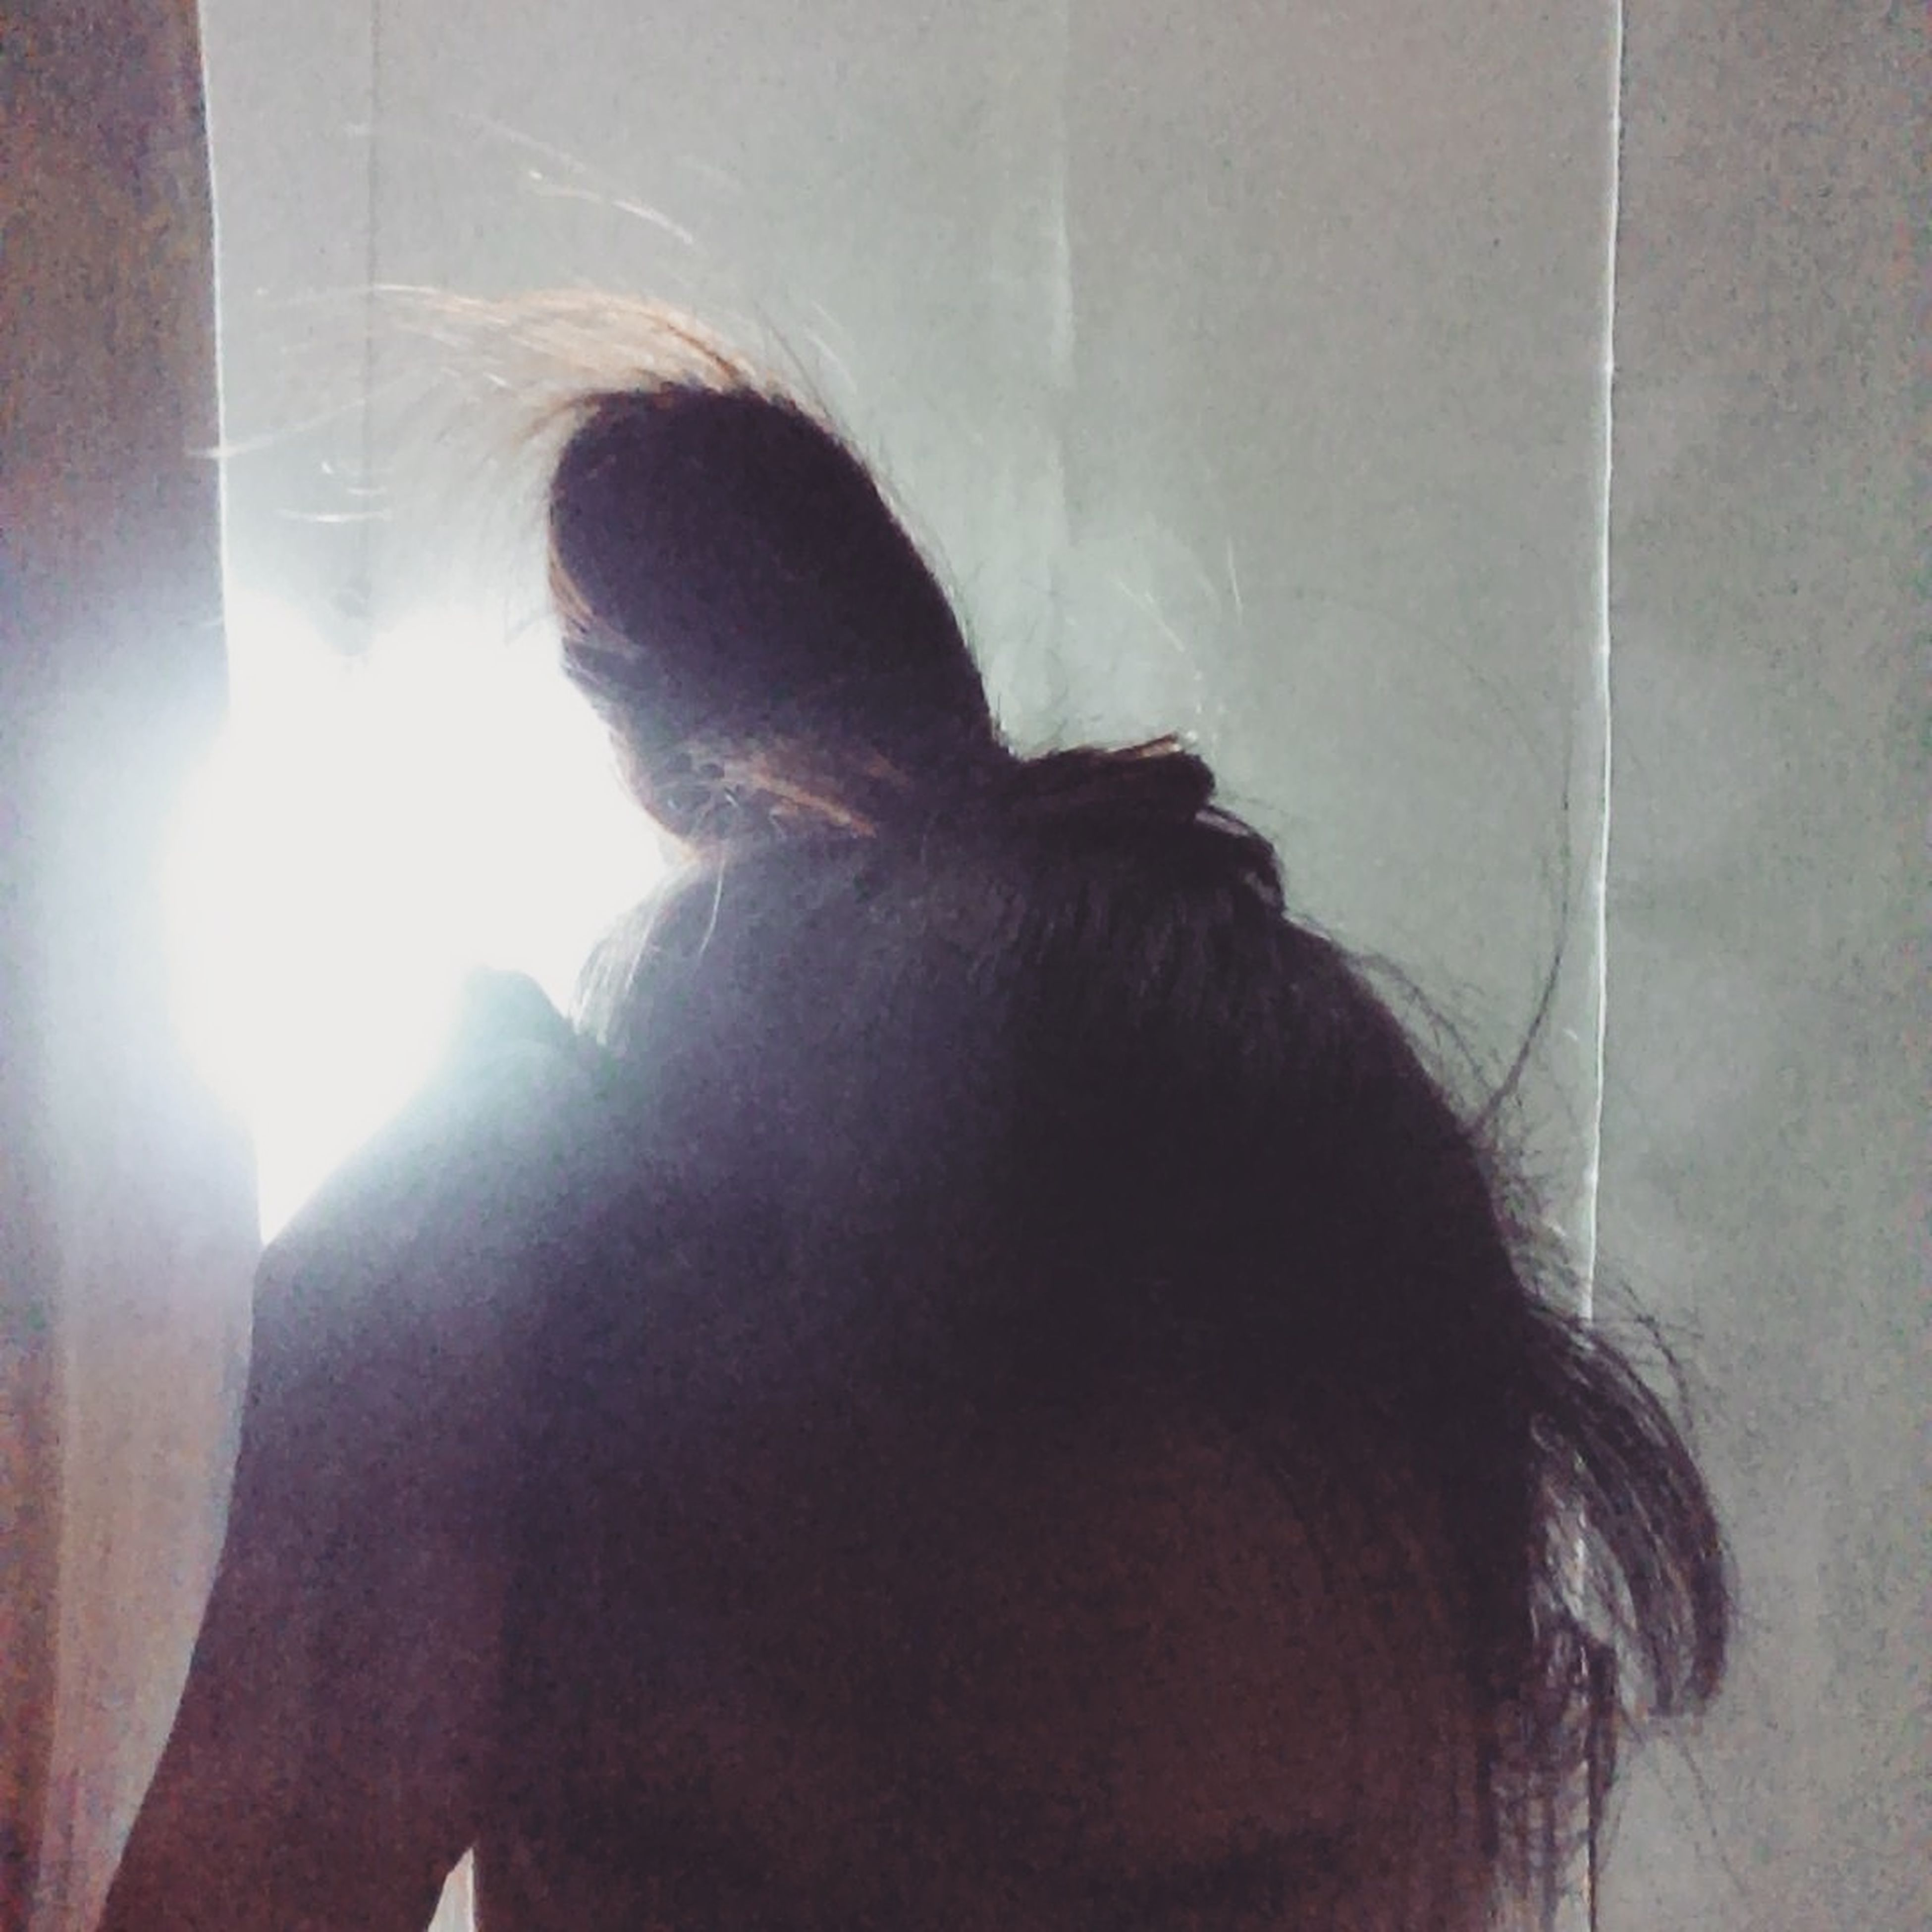 indoors, young adult, lifestyles, headshot, home interior, young women, leisure activity, wall - building feature, long hair, person, sunlight, domestic room, contemplation, front view, curtain, side view, window